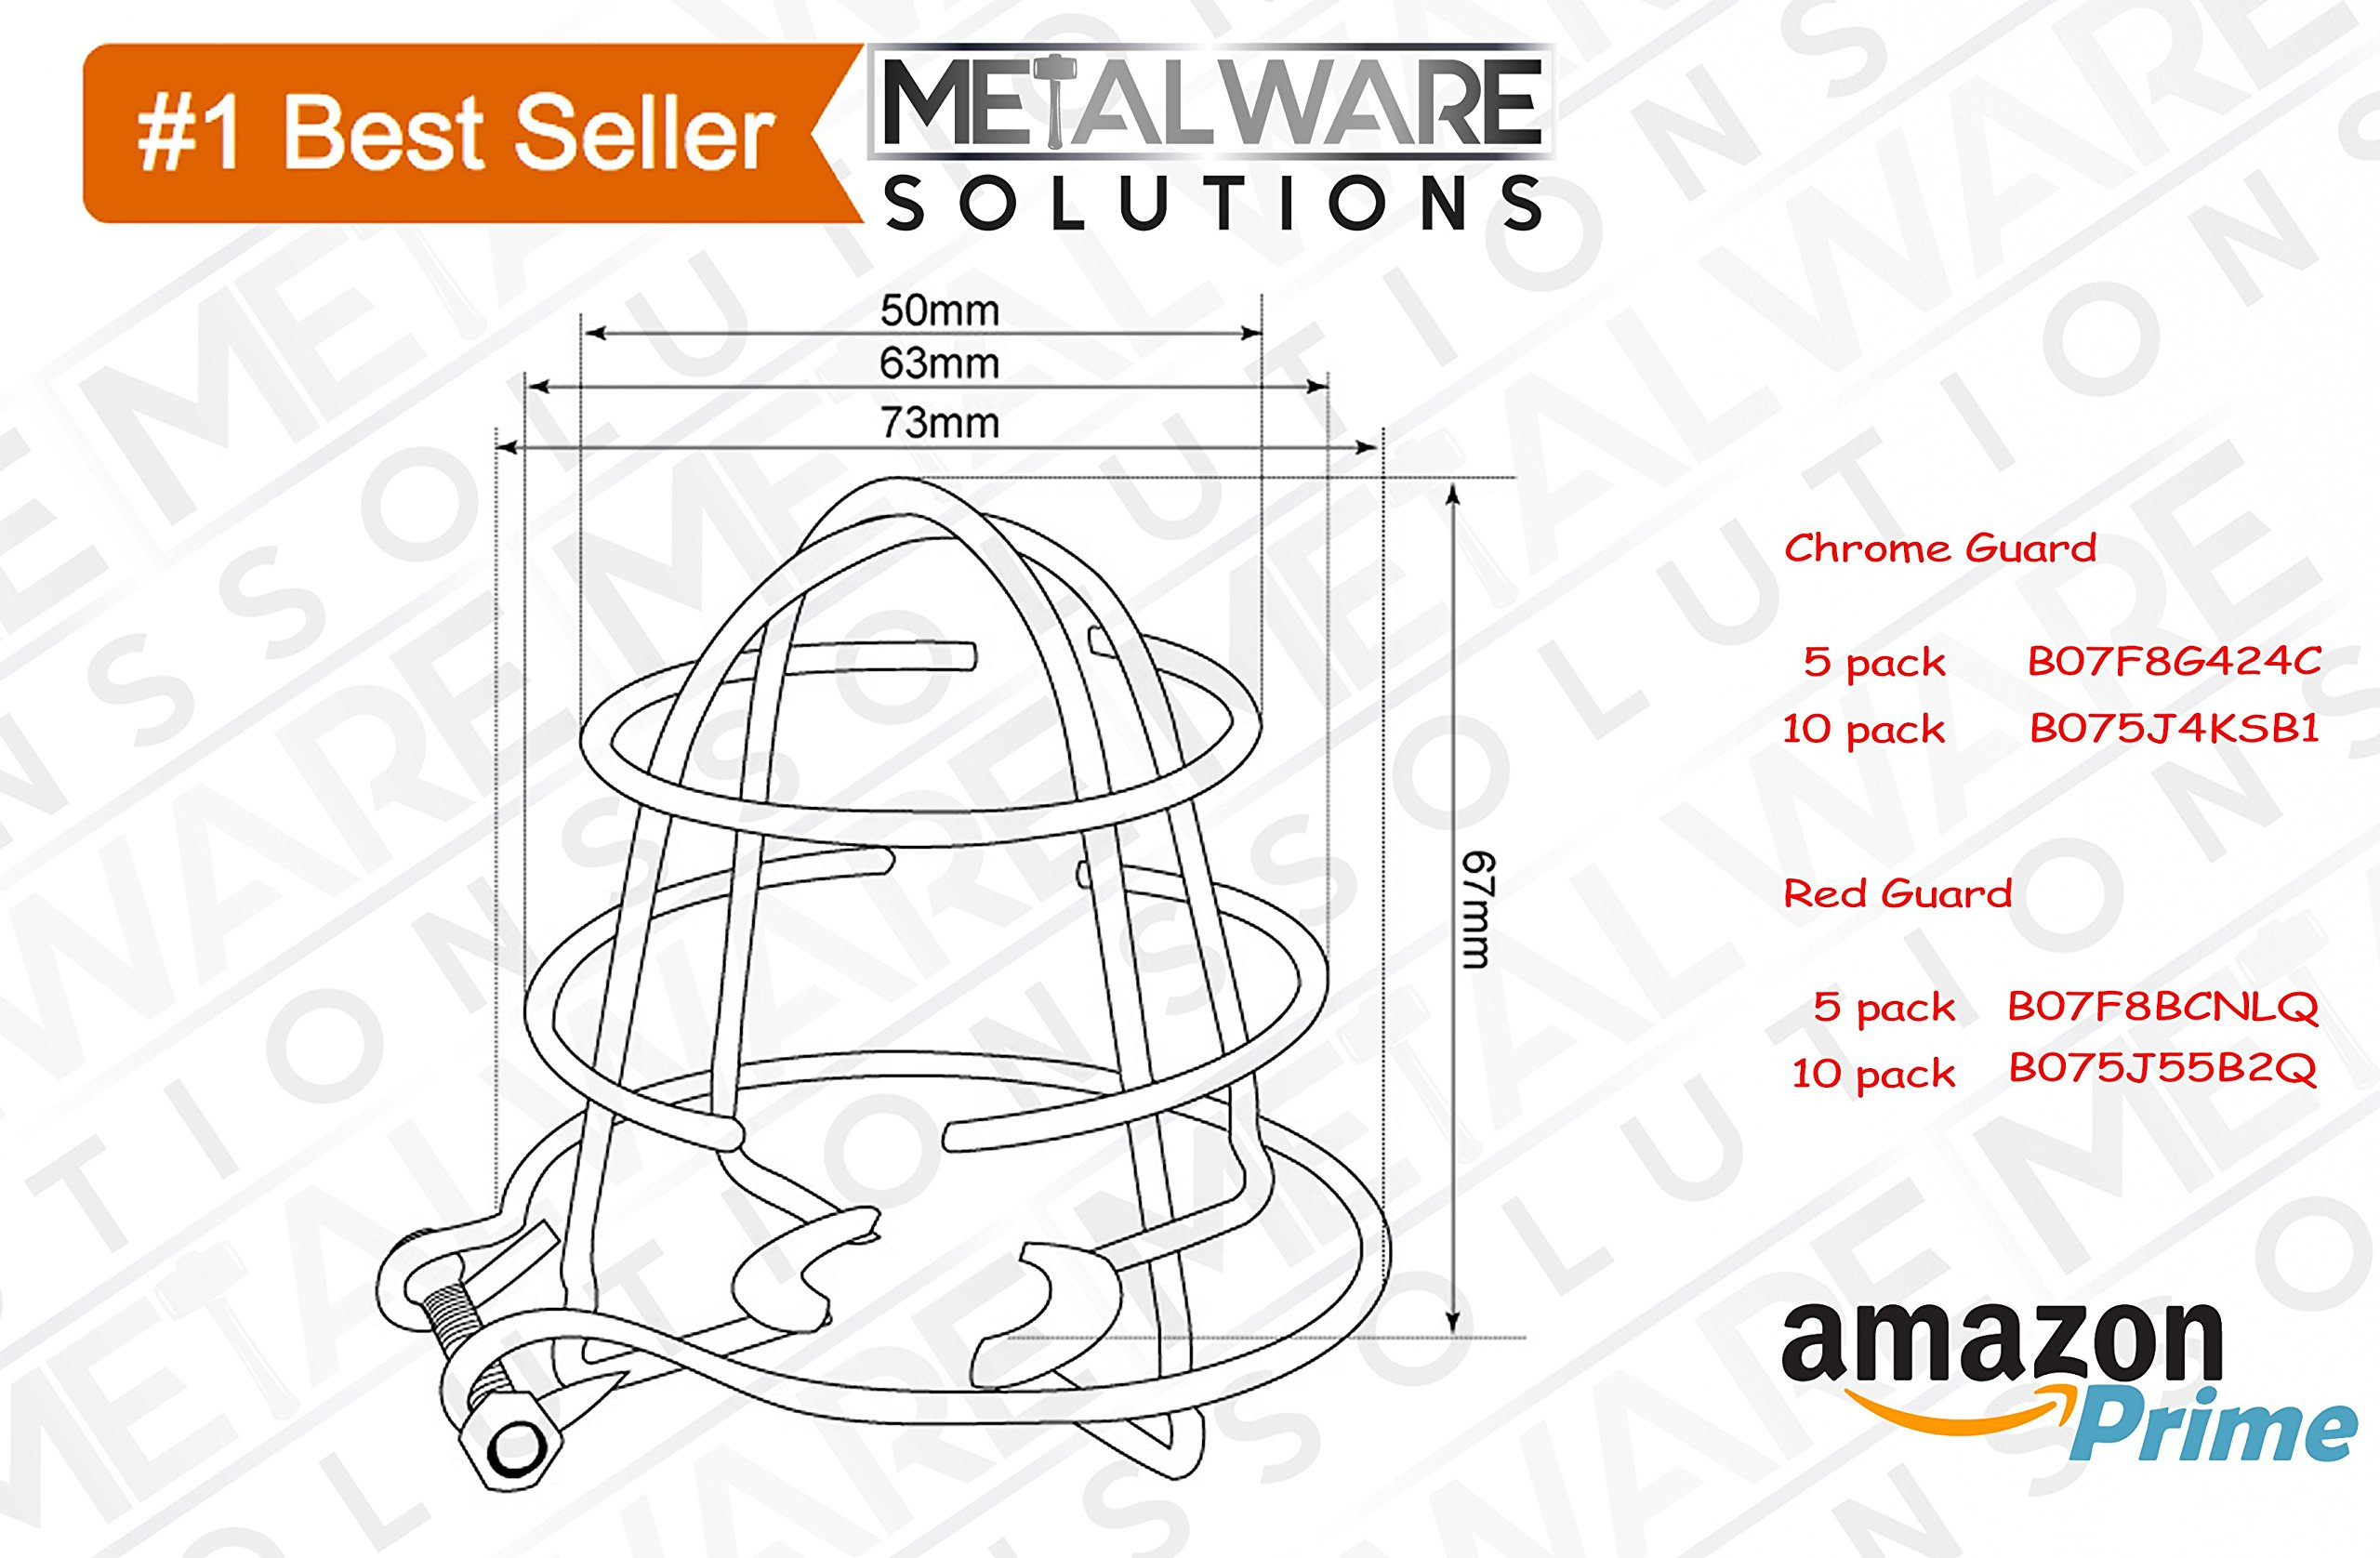 5 Pack - Metalware Solutions Red Fire Sprinkler Head Guard with Easy Screw Cover for 1/2'' IPS Head by Metalware Solutions (Image #5)